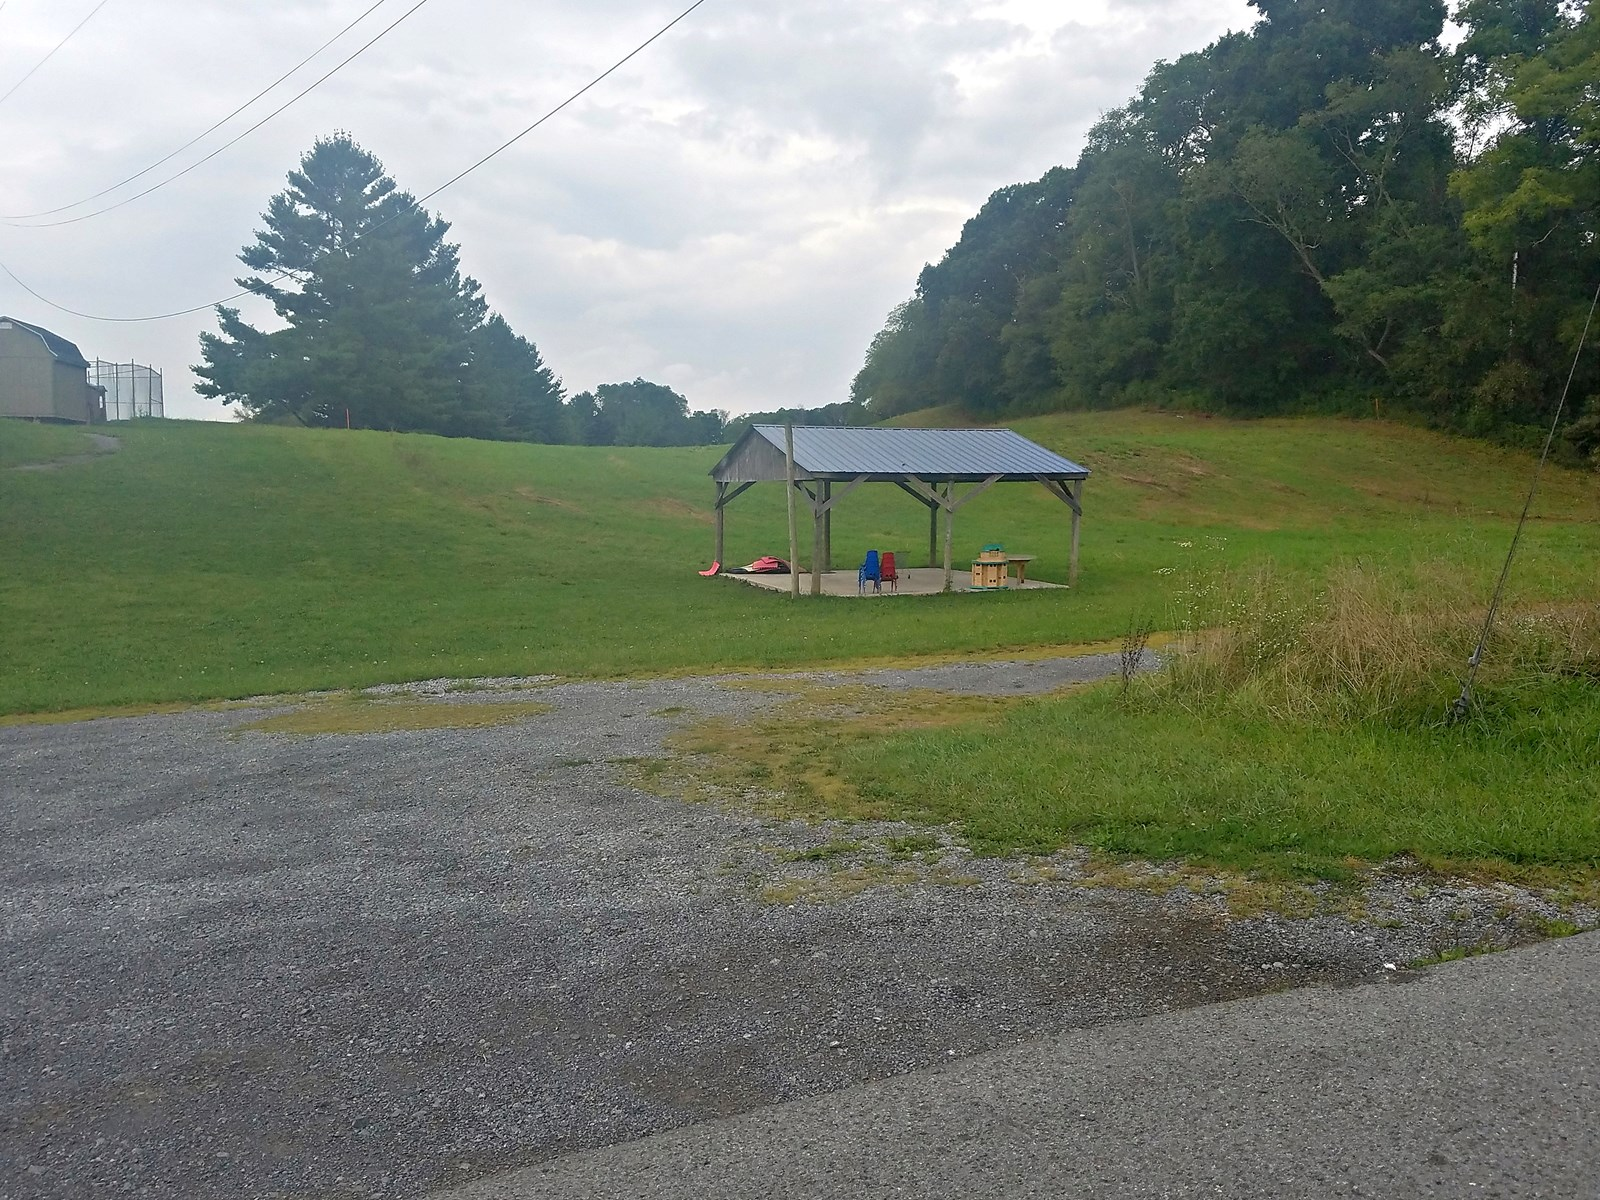 Absolute Auction - 0.9 Acres on Hockman Pike